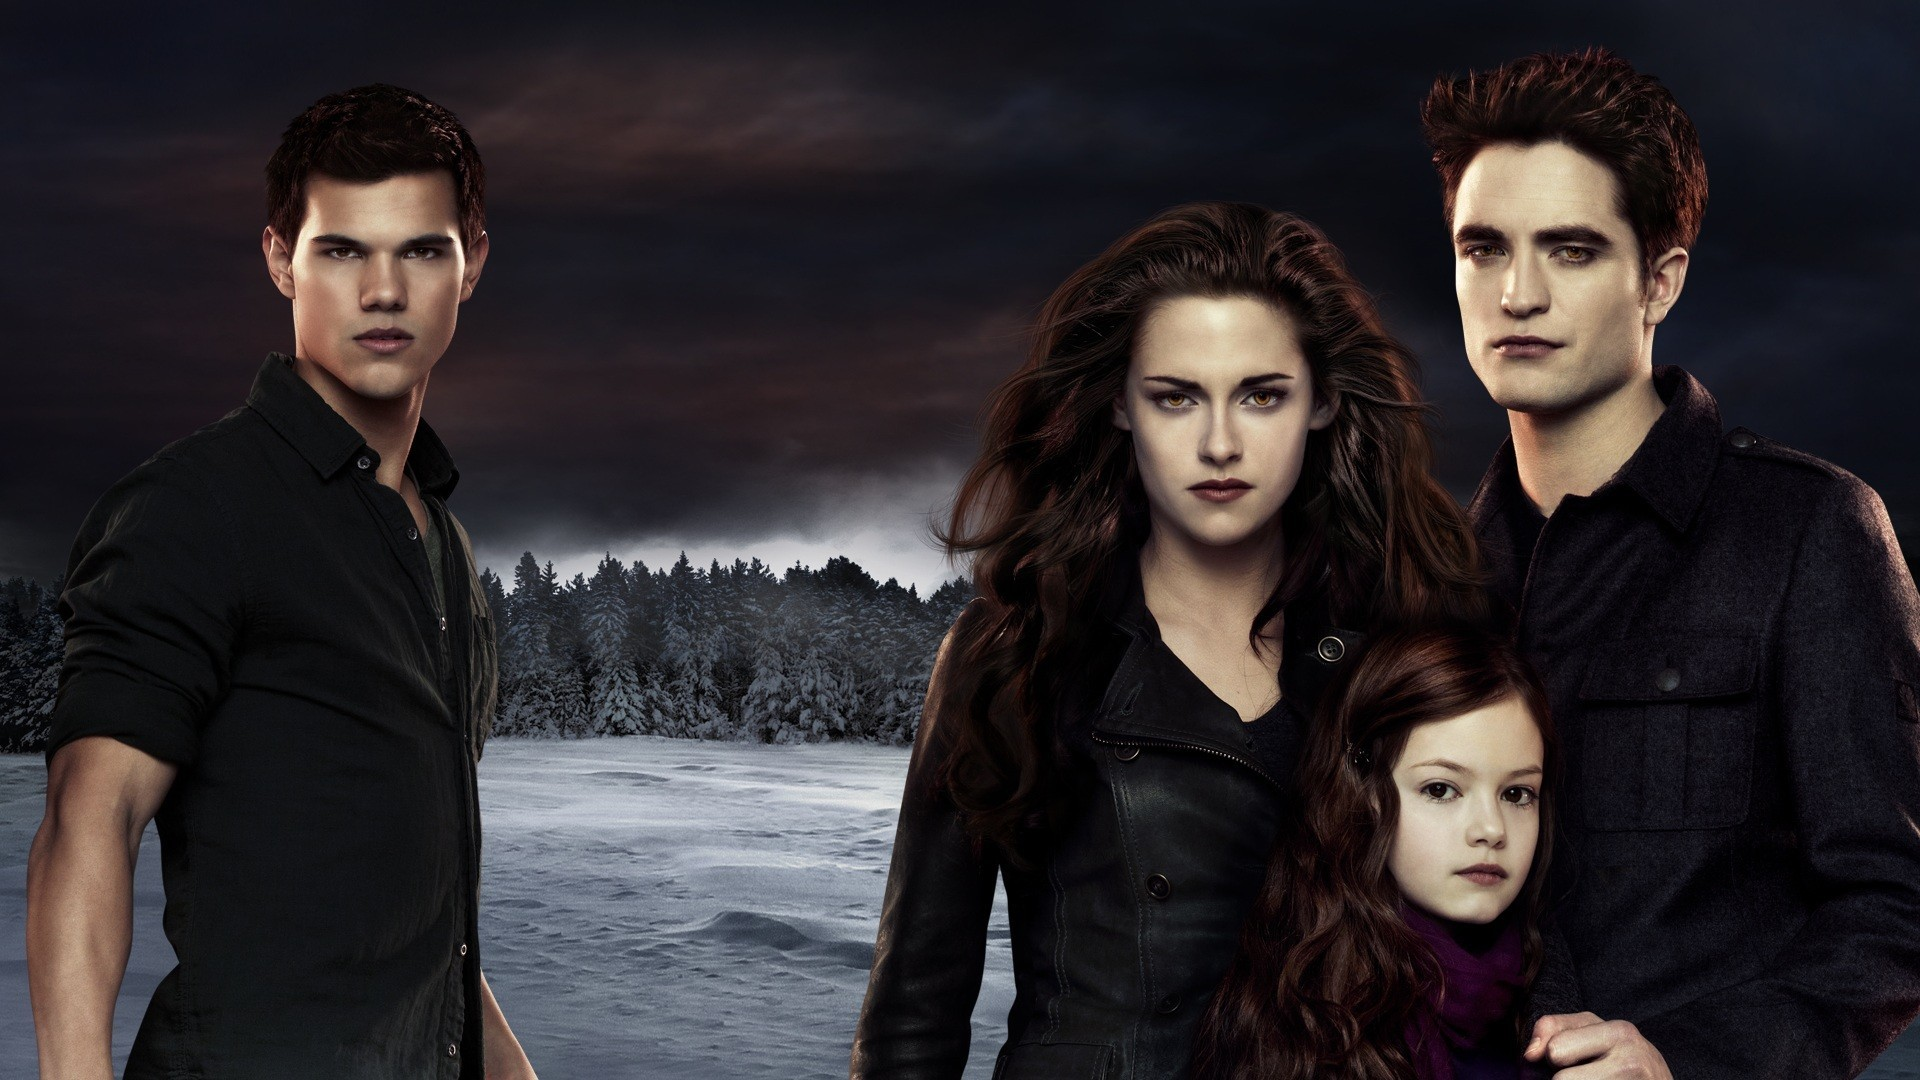 2026x3000 Twilight Eclipse Movie Poster Wallpaper